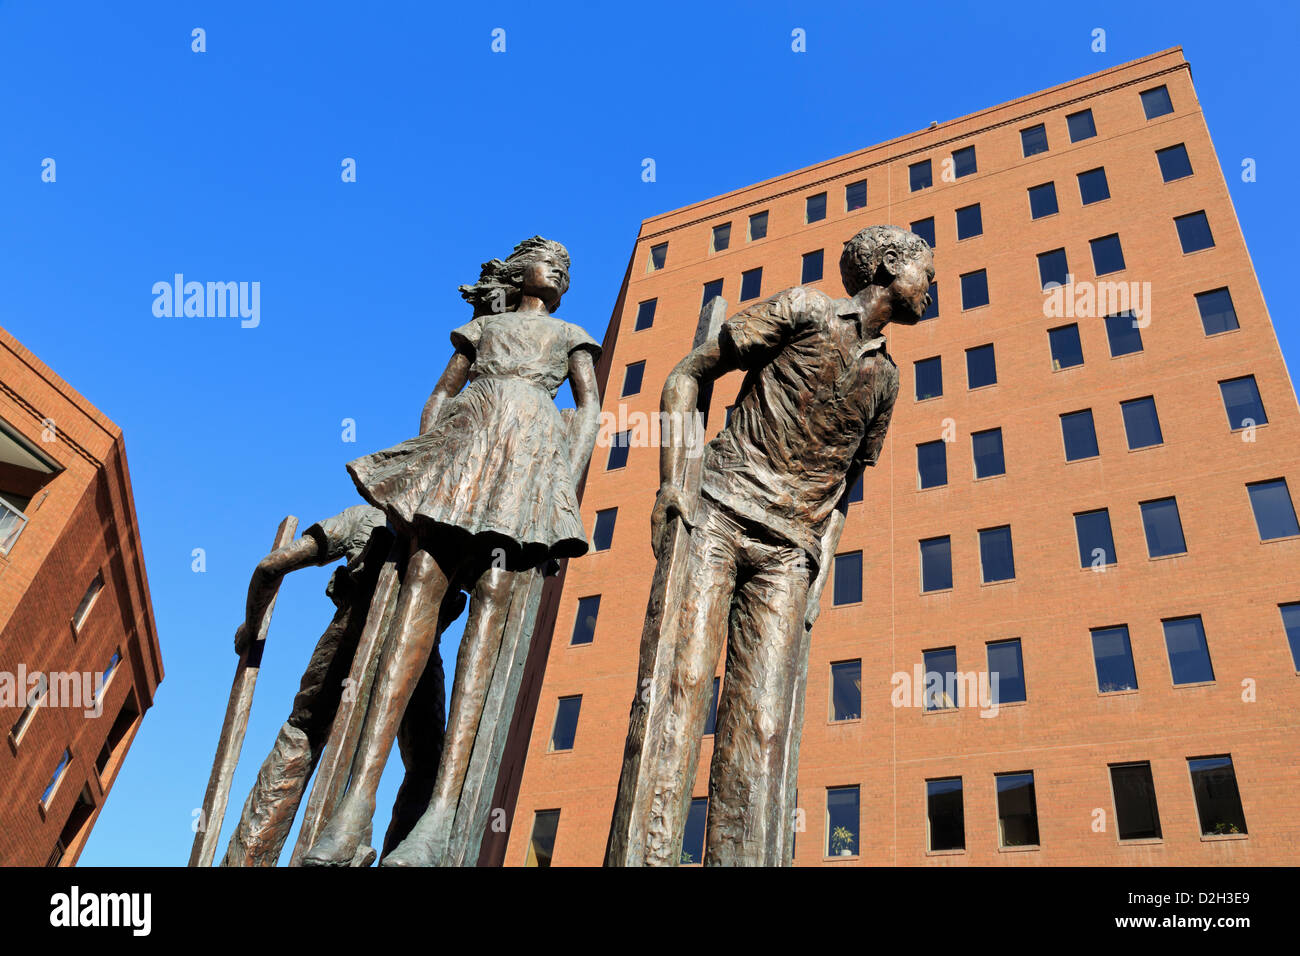 Stilt Walkers by Dennis Smith on Writers Square,16th Street Mall,Denver,Colorado,USA - Stock Image